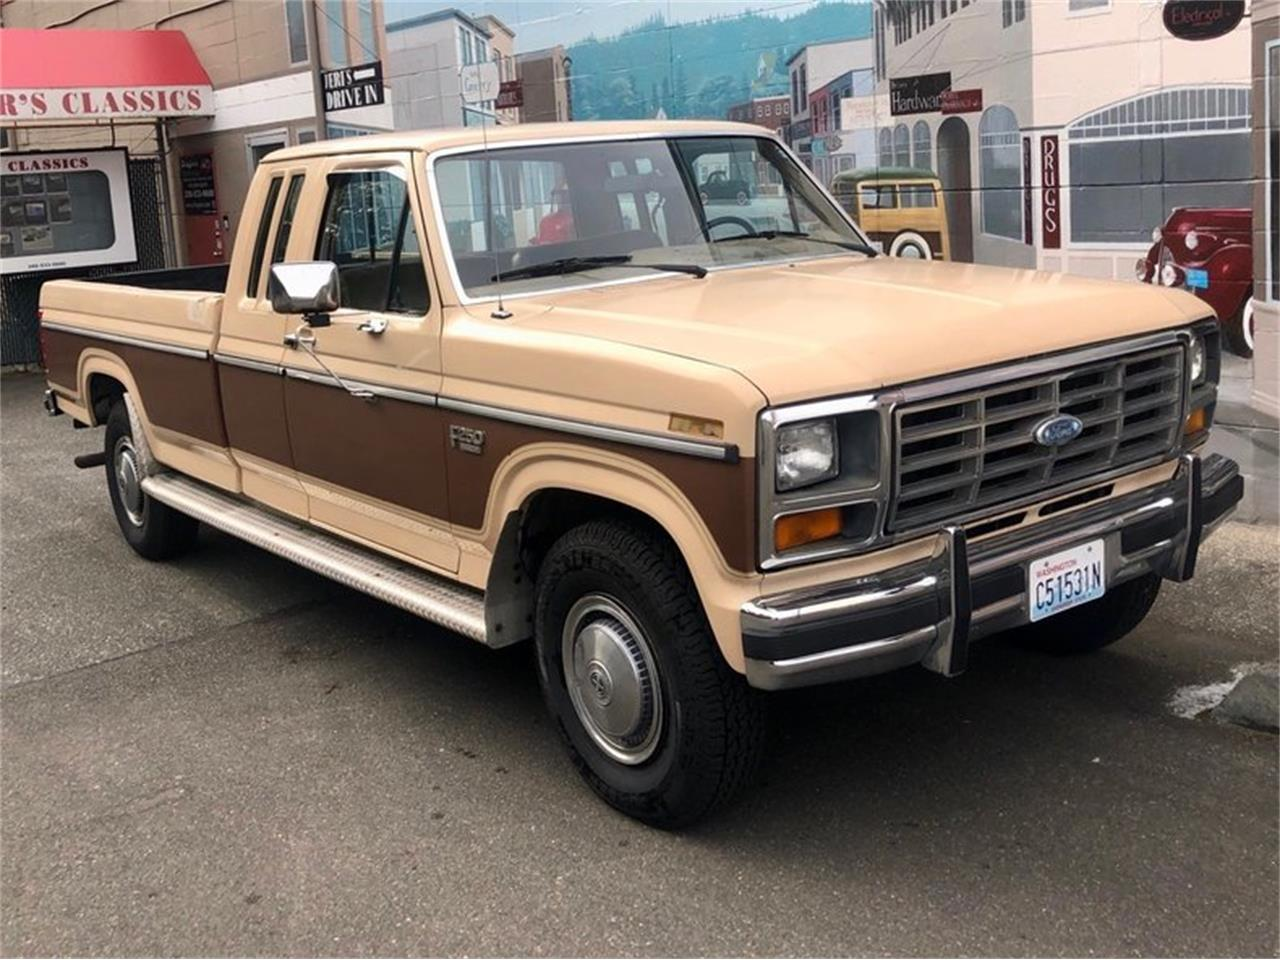 Large Picture of 1985 Ford F250 located in Seattle Washington - $3,995.00 Offered by Drager's Classics - PWMX